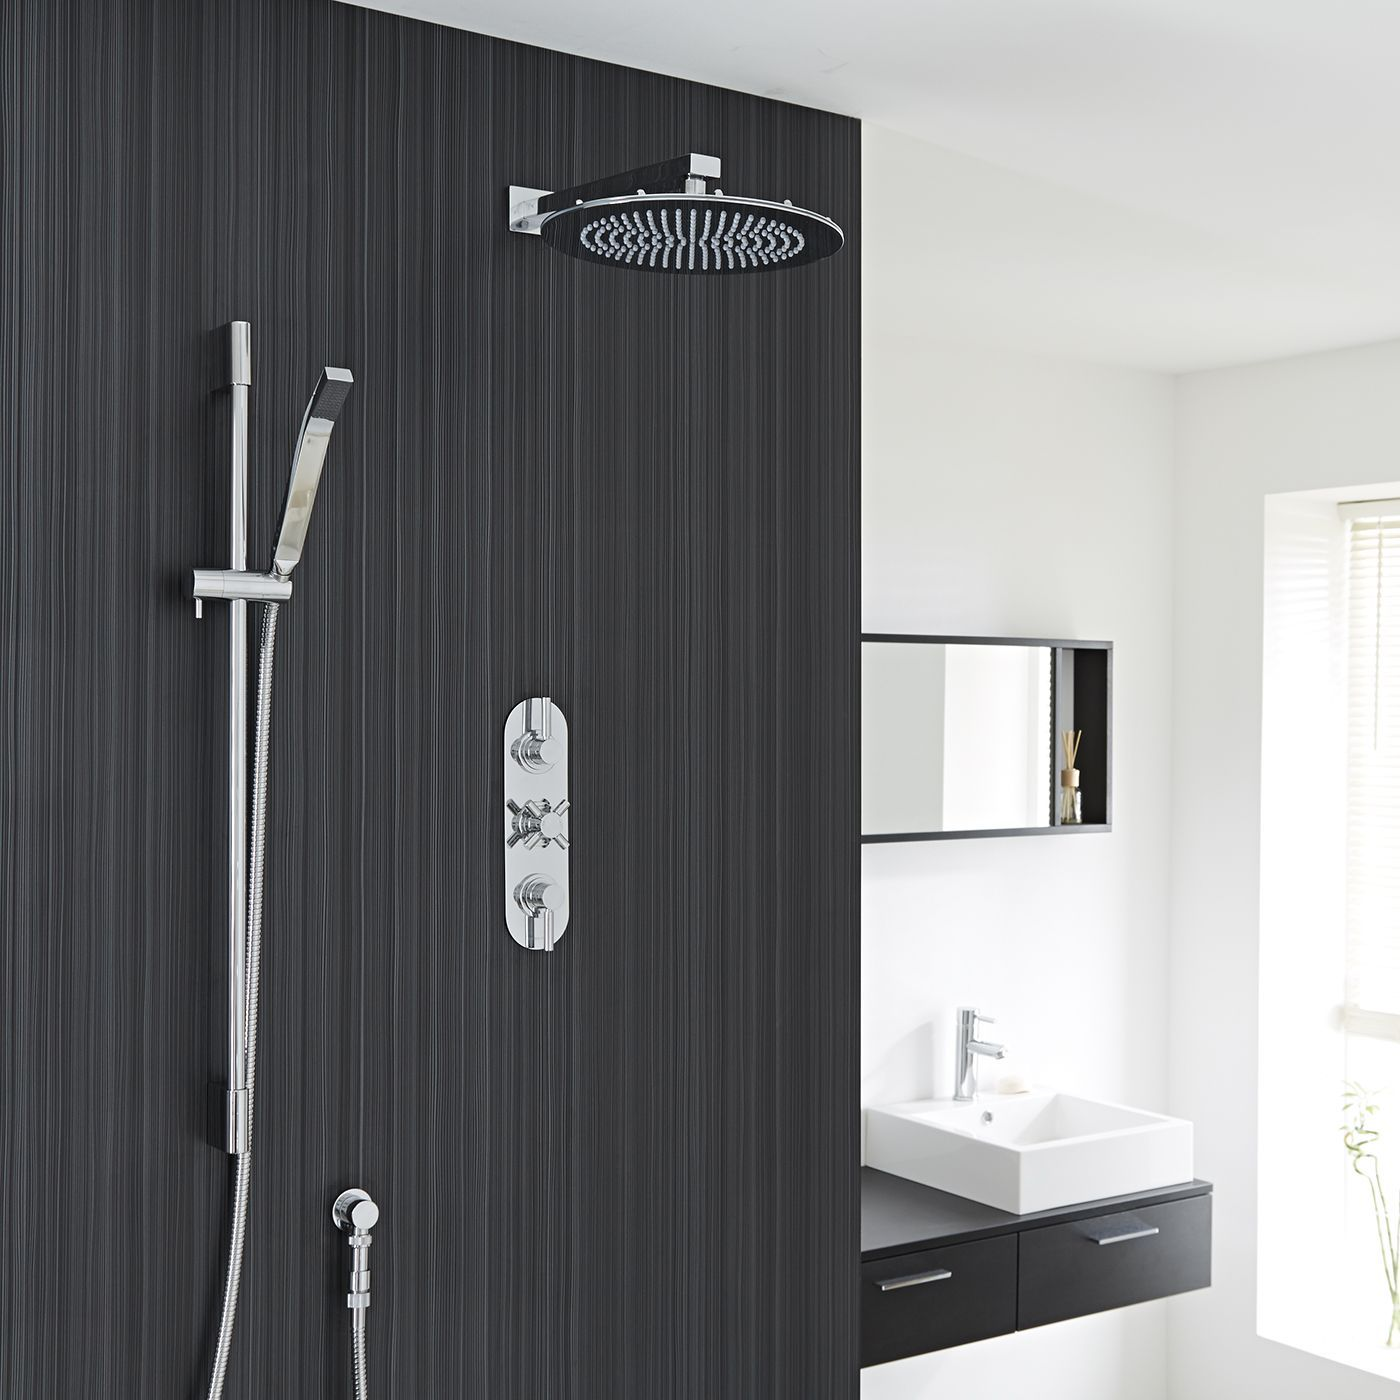 "Tec Thermostatic Shower System with 12"" Round Head & Arm & Brass Handset"